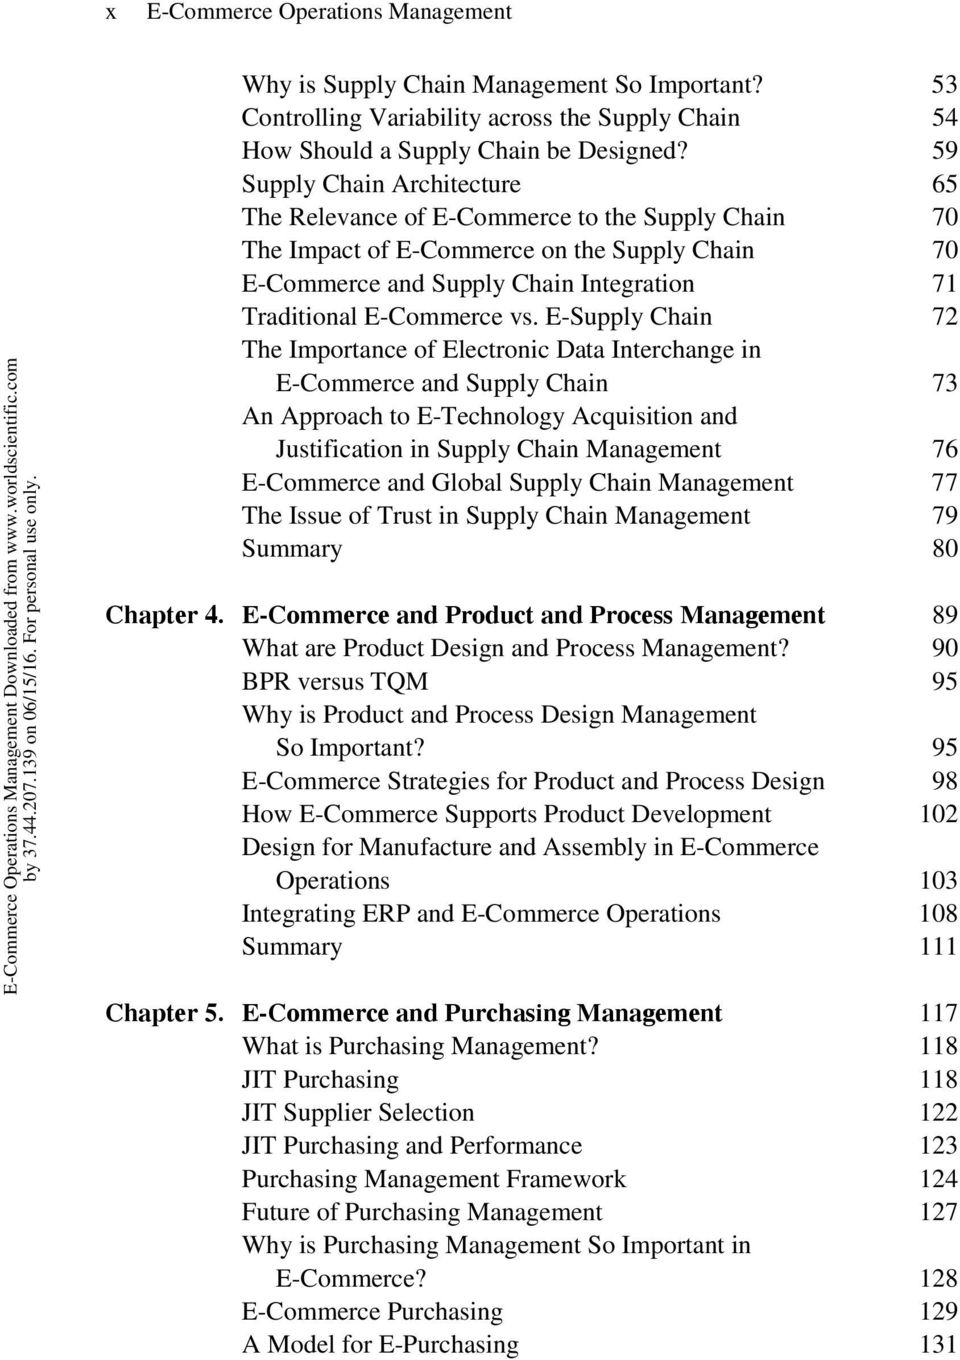 E-Supply Chain 72 The Importance of Electronic Data Interchange in E-Commerce and Supply Chain 73 An Approach to E-Technology Acquisition and Justification in Supply Chain Management 76 E-Commerce